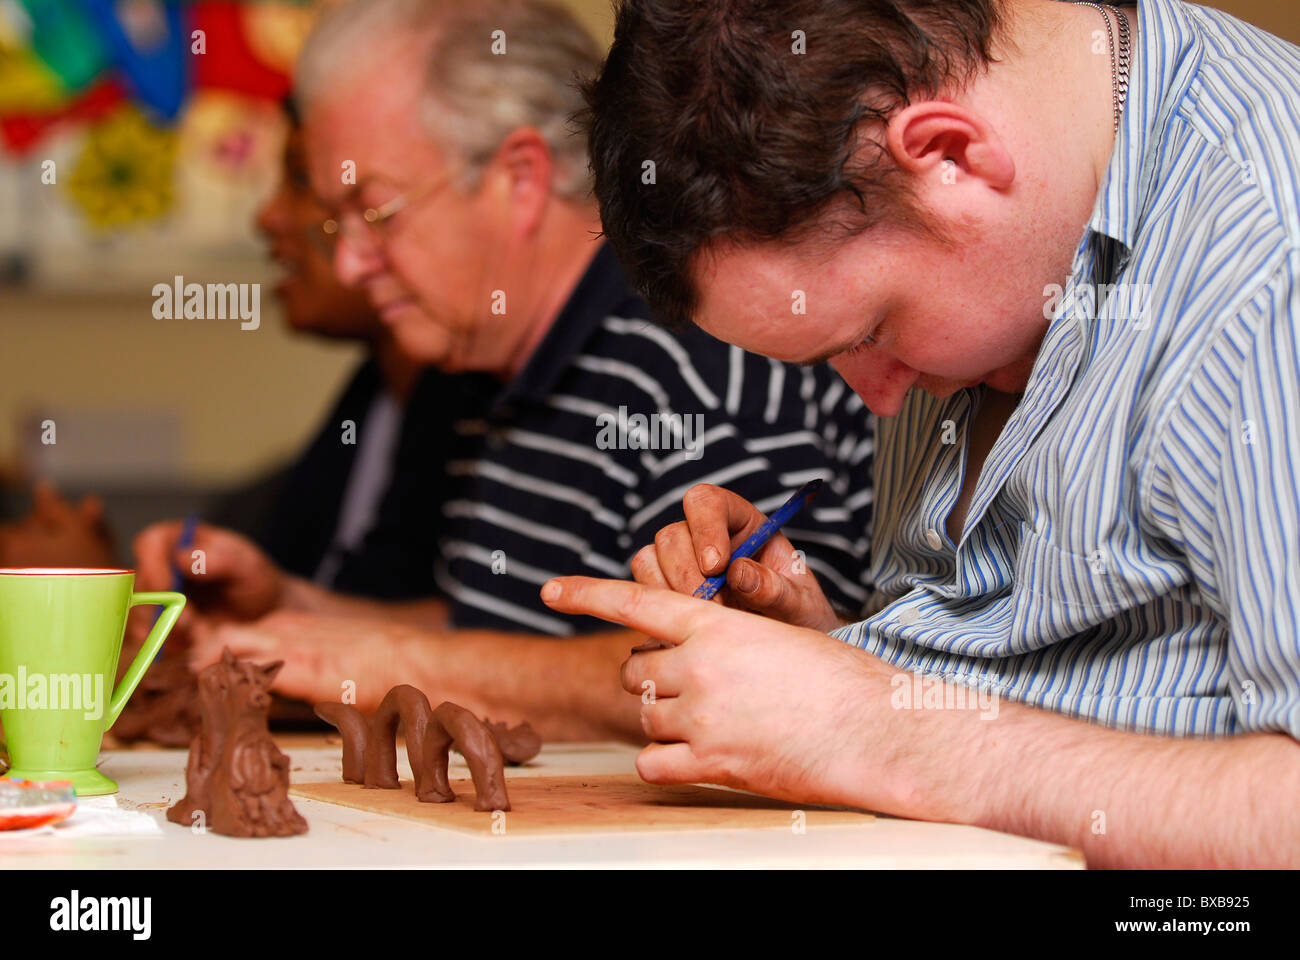 Men engaged in an art therapy programme, Nottingham, UK. - Stock Image